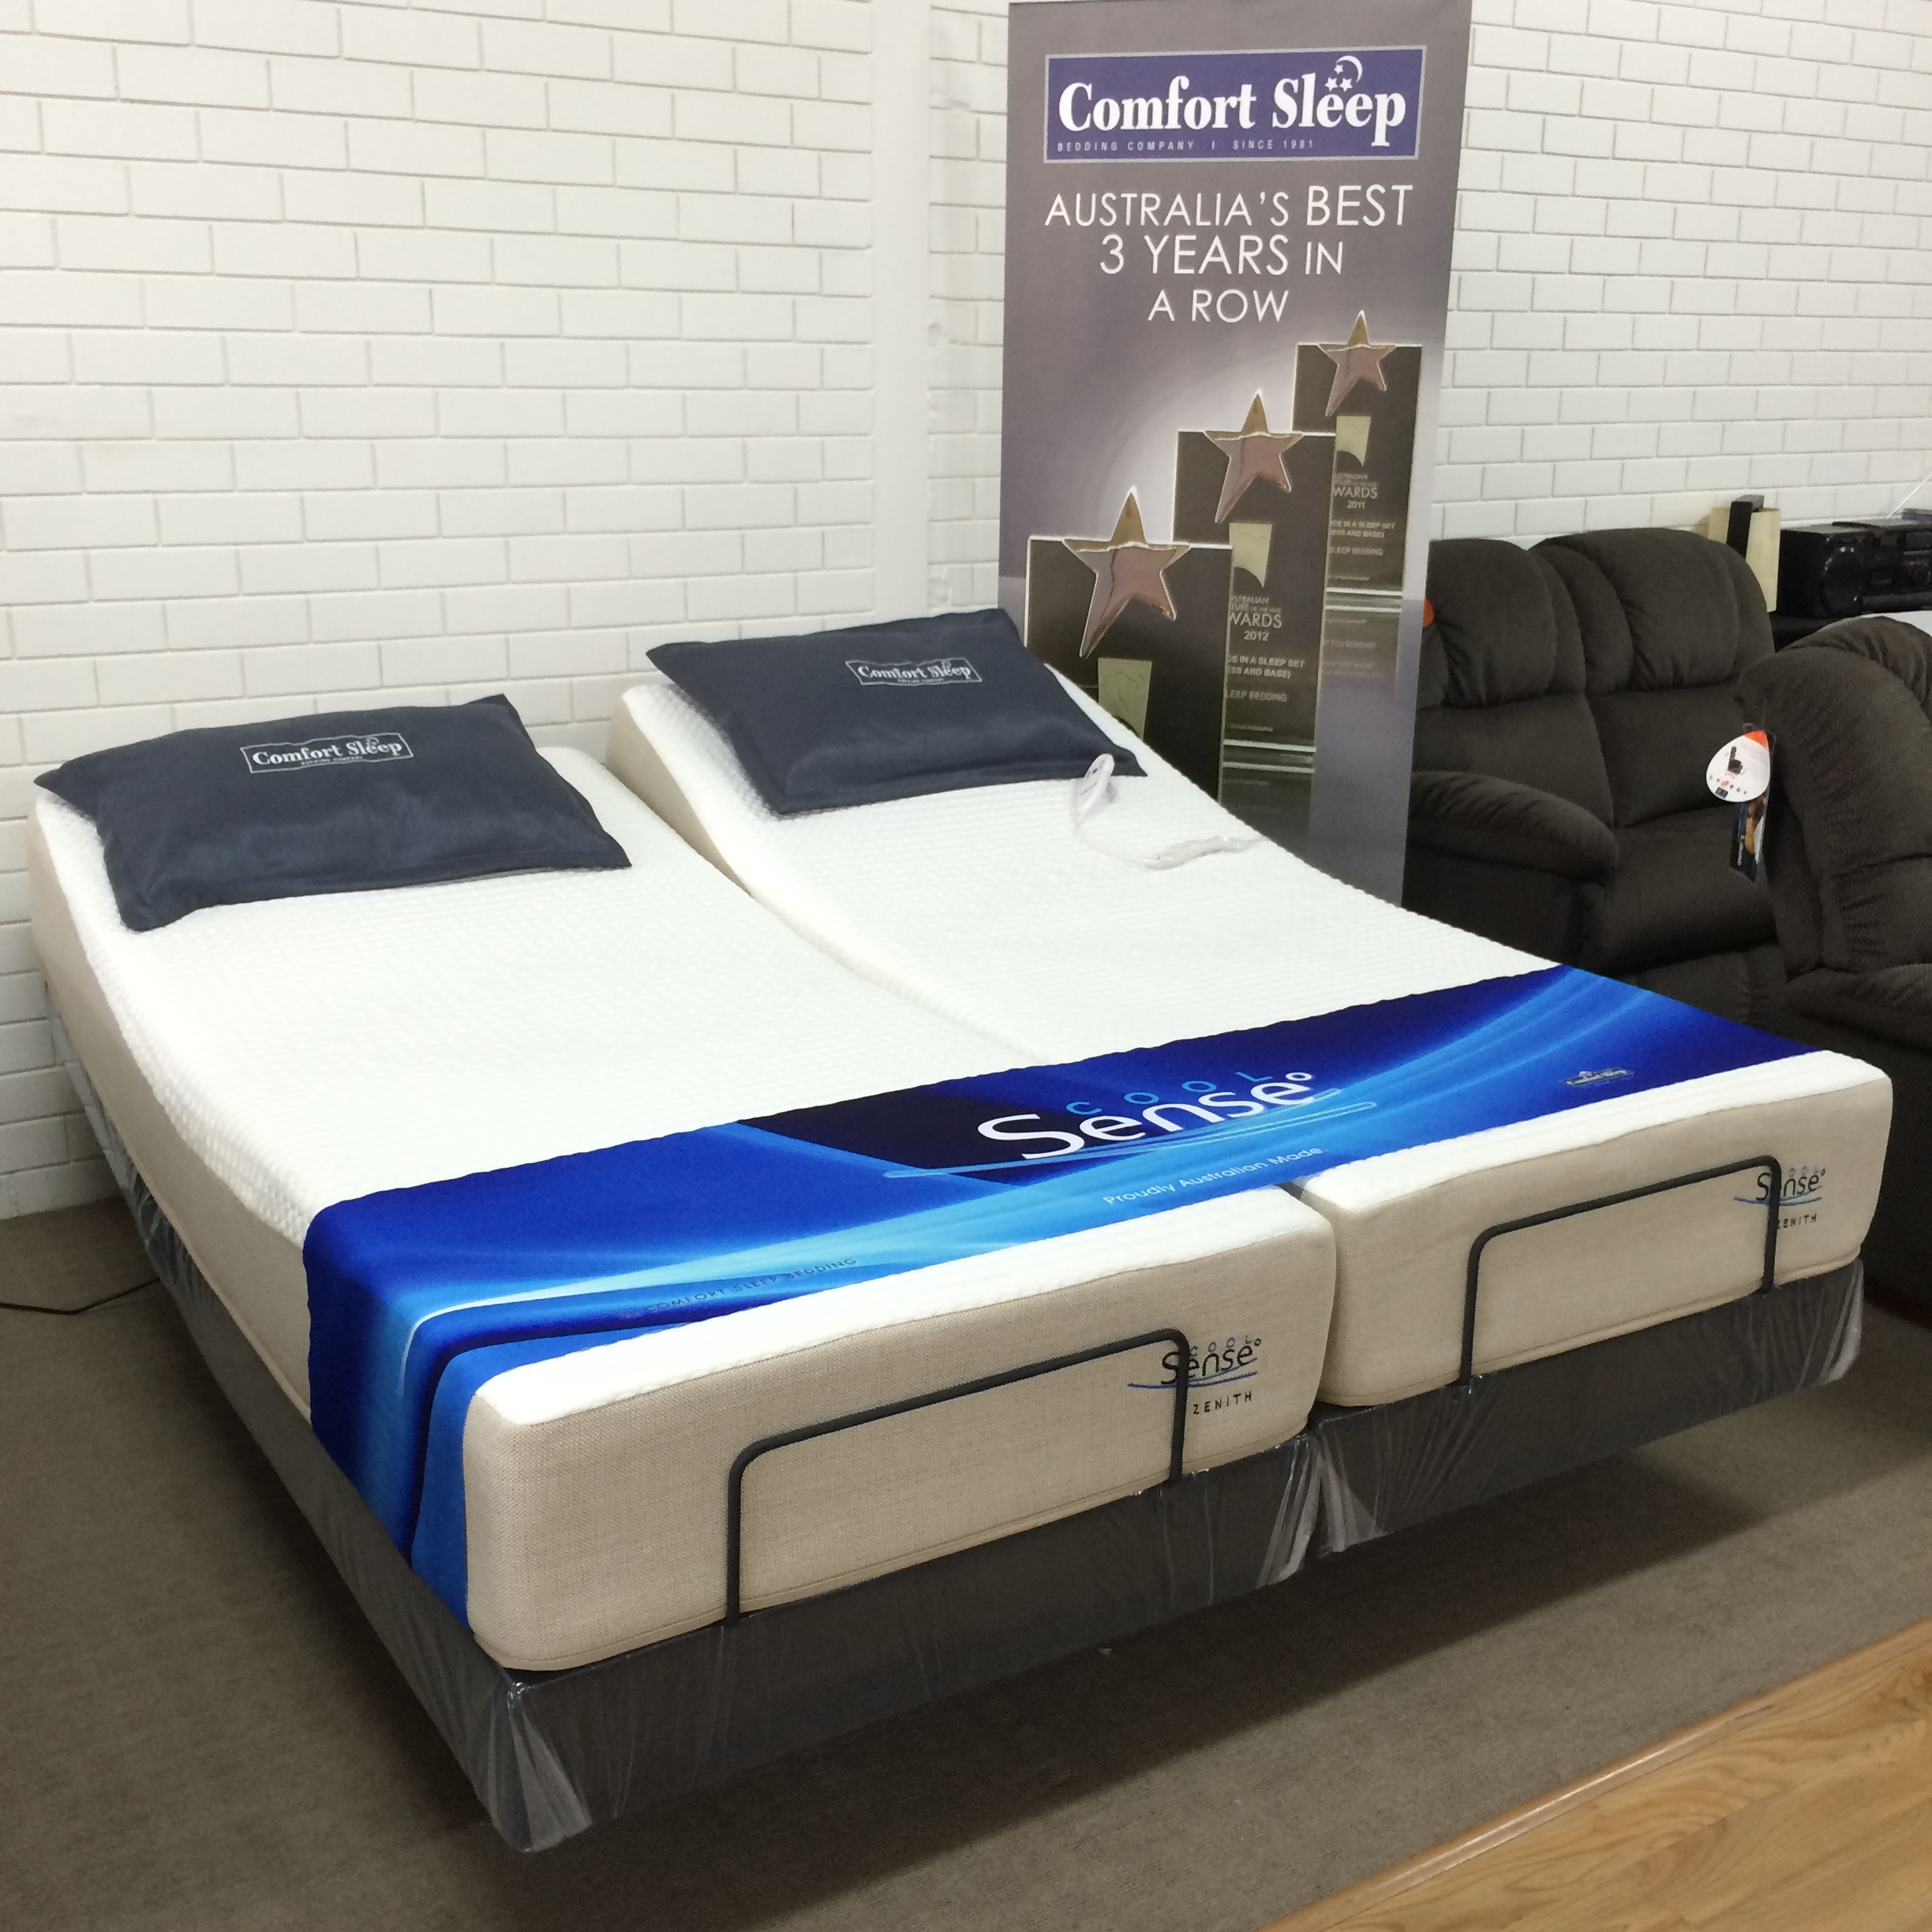 Reverie Adjustable Bed 7s Textured Motionflex Base With Zenith Cool Sense Mattress Split King